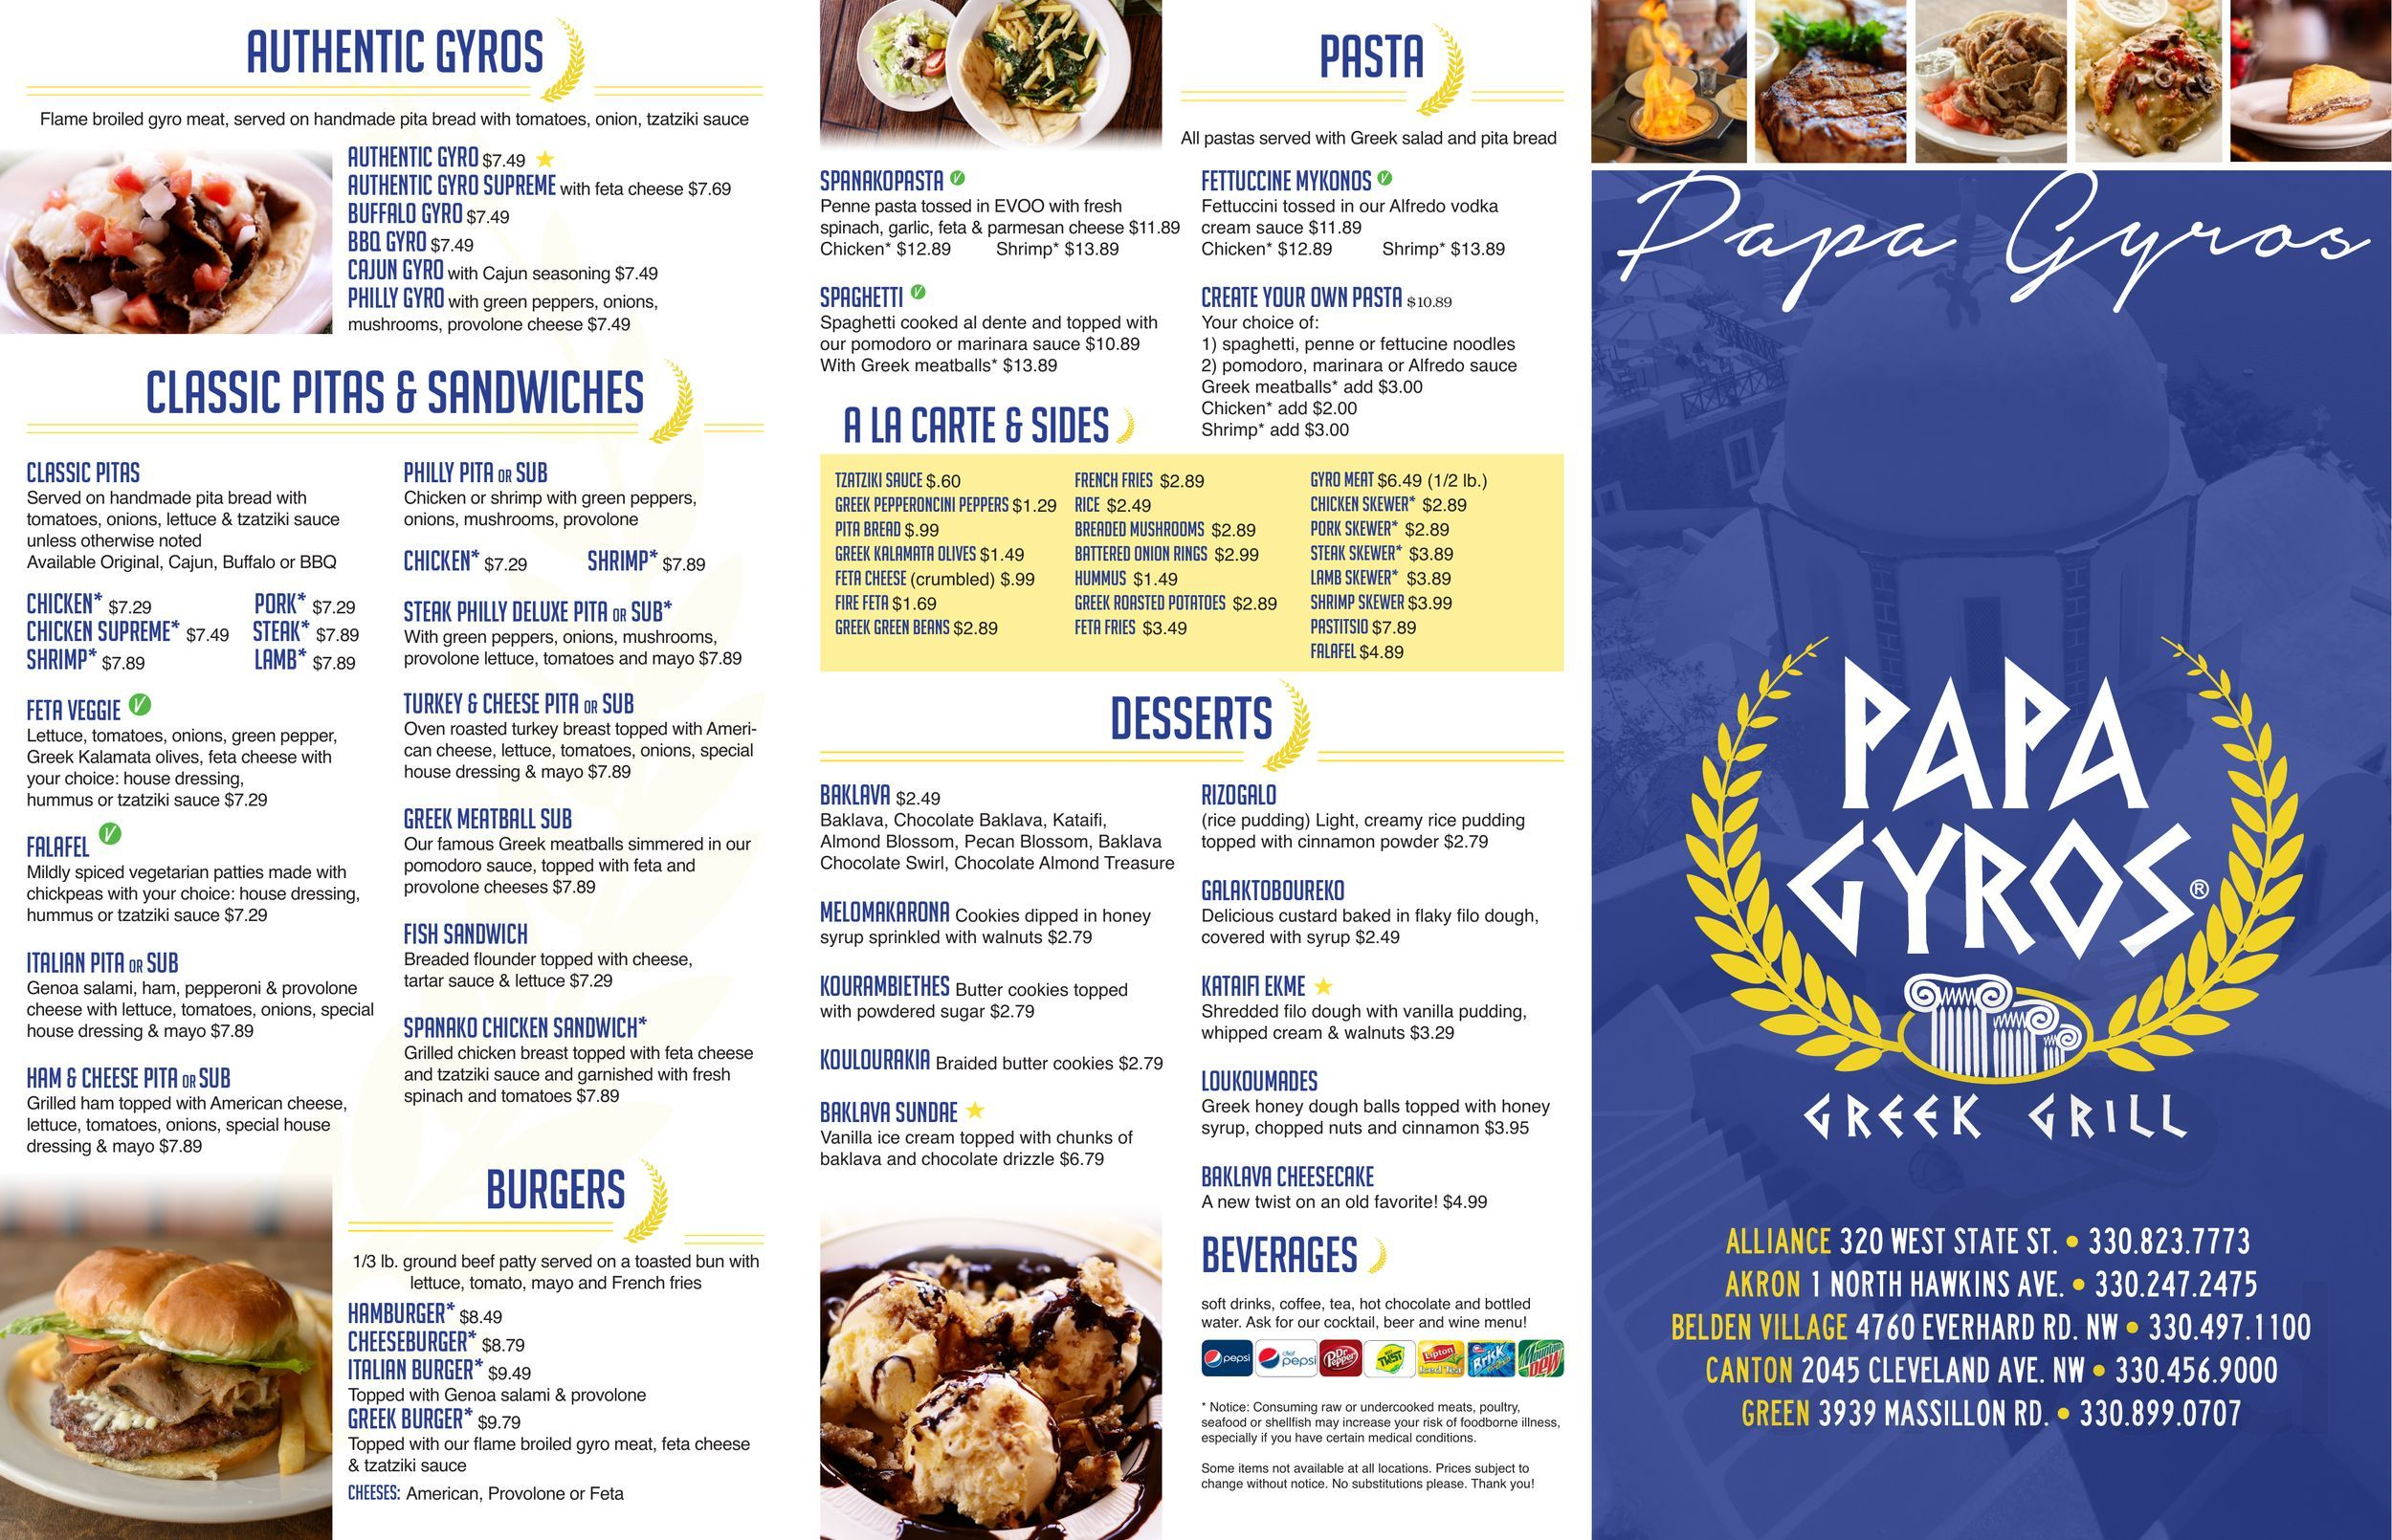 Papa Gyros Menu In Canton Ohio Usa Find the latest breaking news and information on the top stories, weather, business, entertainment, politics, and more. papa gyros menu in canton ohio usa